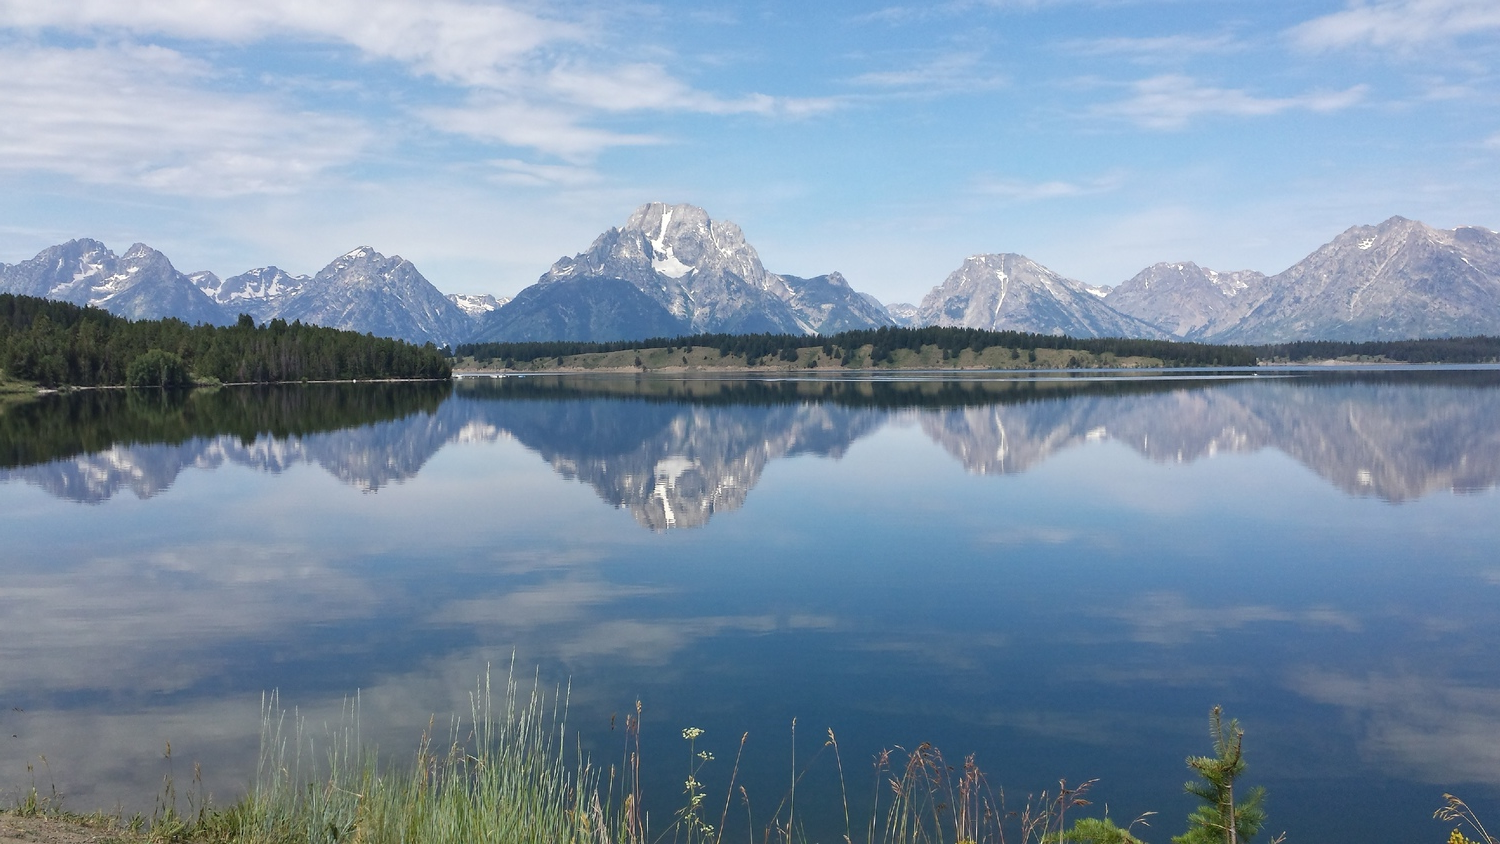 The national park is named after the tallest mountain in the Teton Range, Grand Teton.